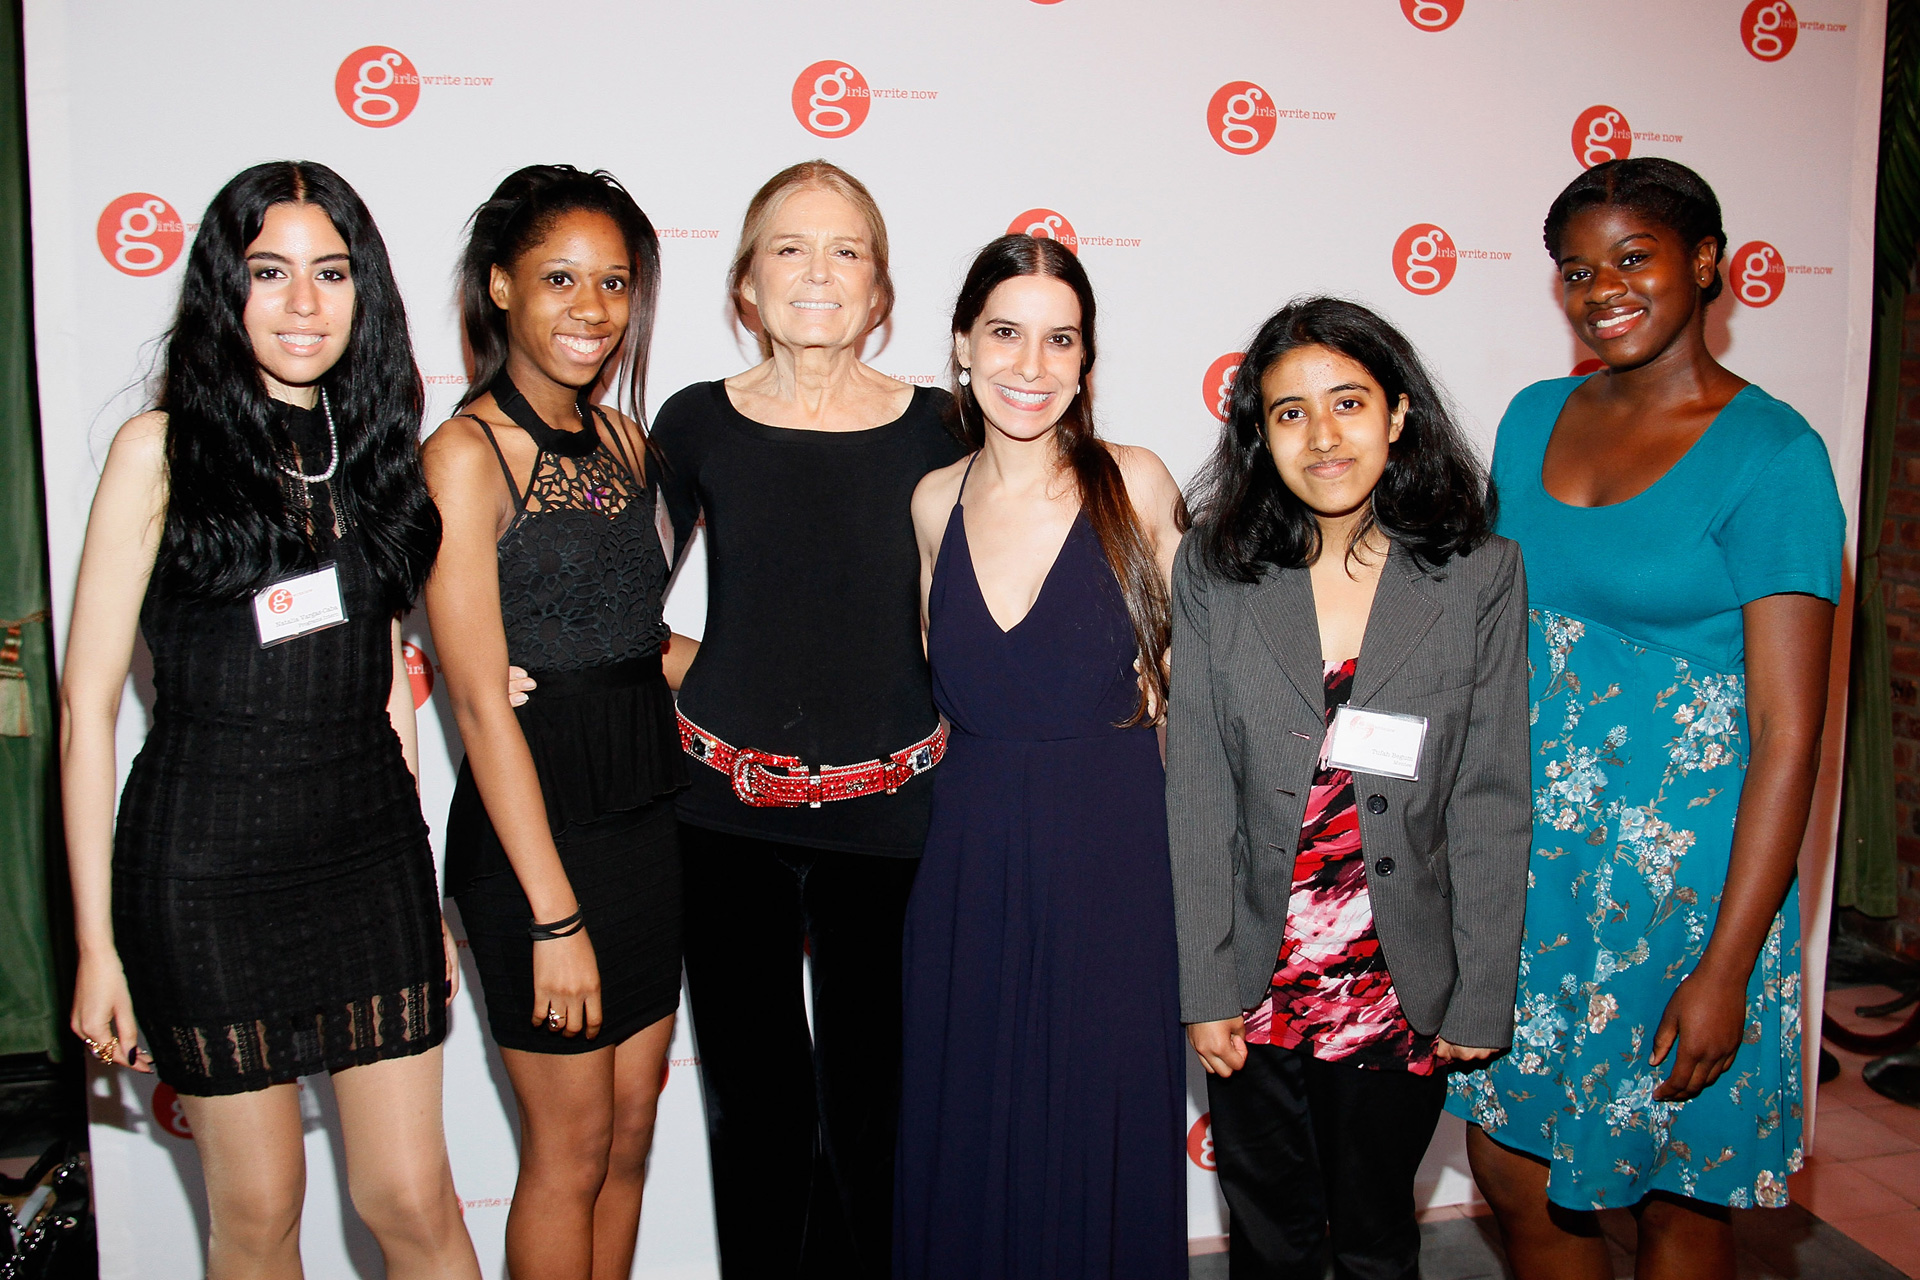 Girls Write Now gala honoring Gloria Steinem